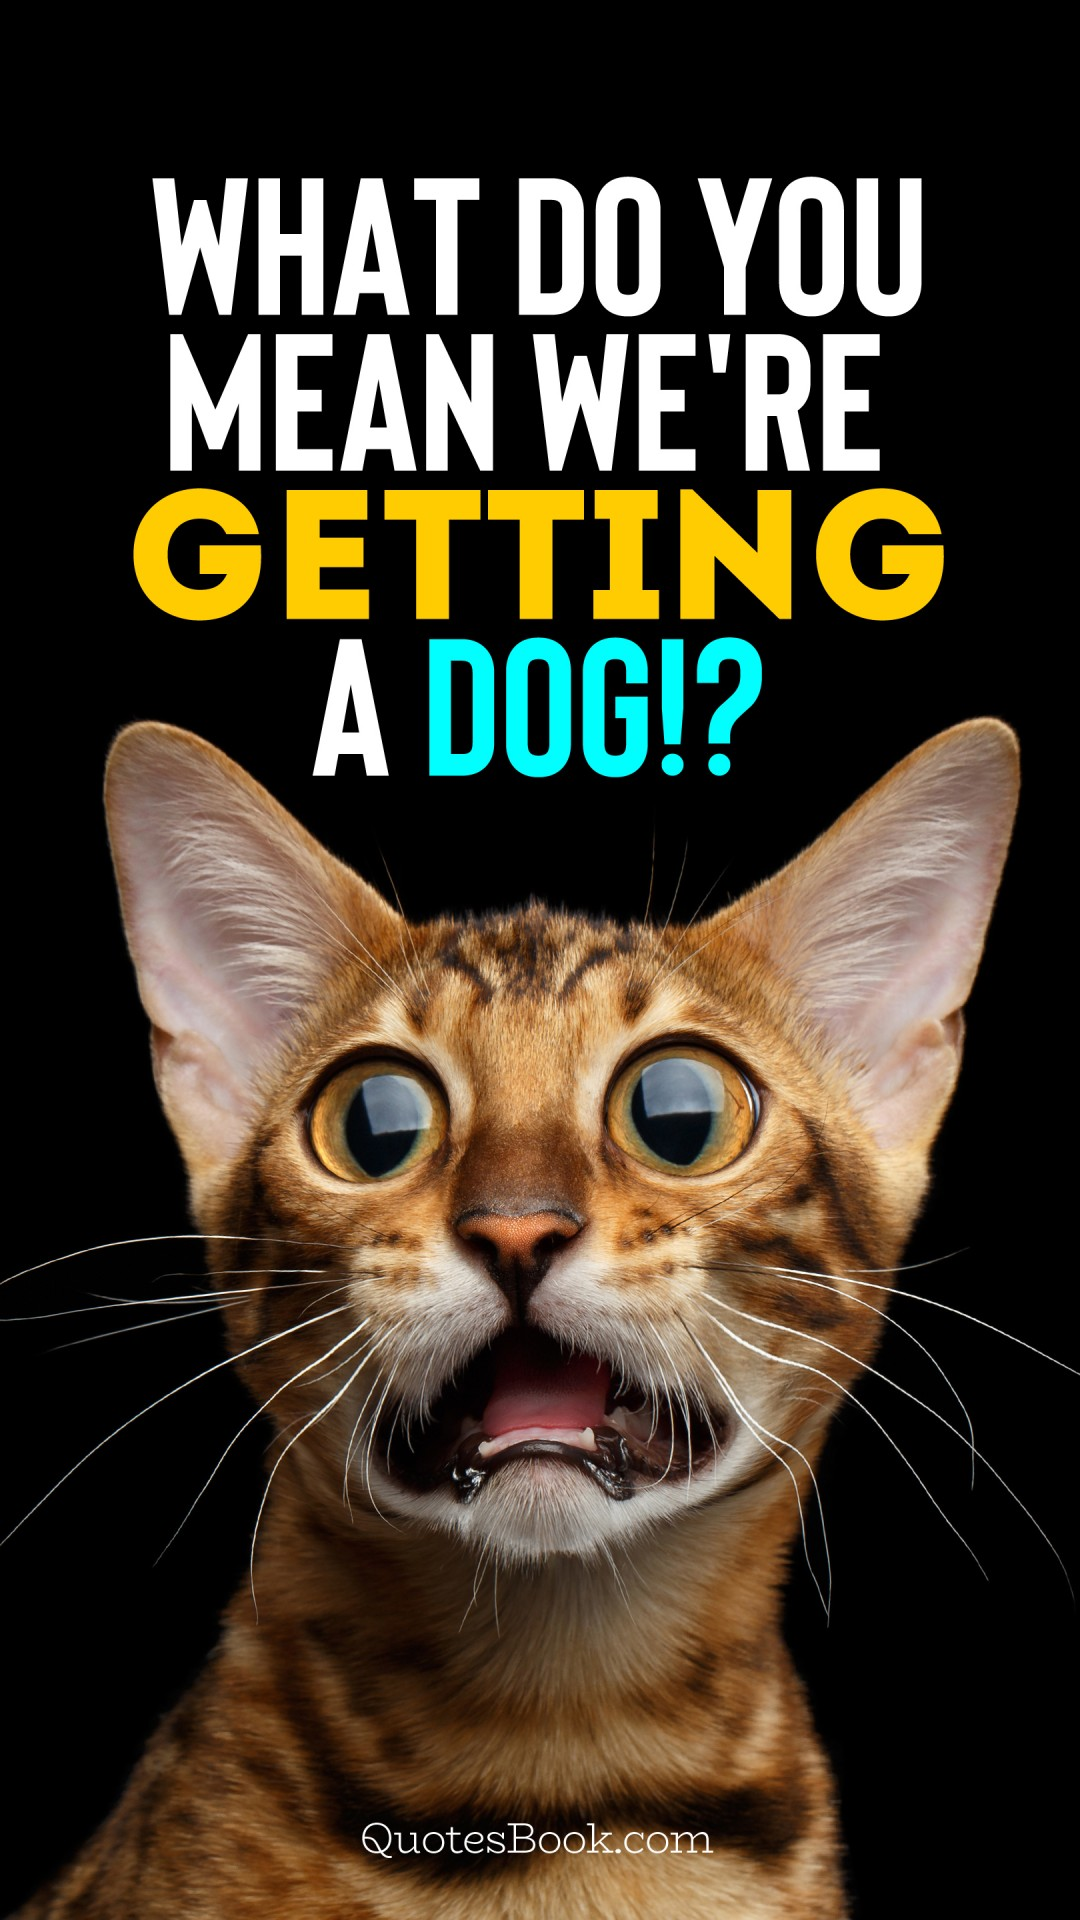 What do you mean we're getting a dog!? - QuotesBook